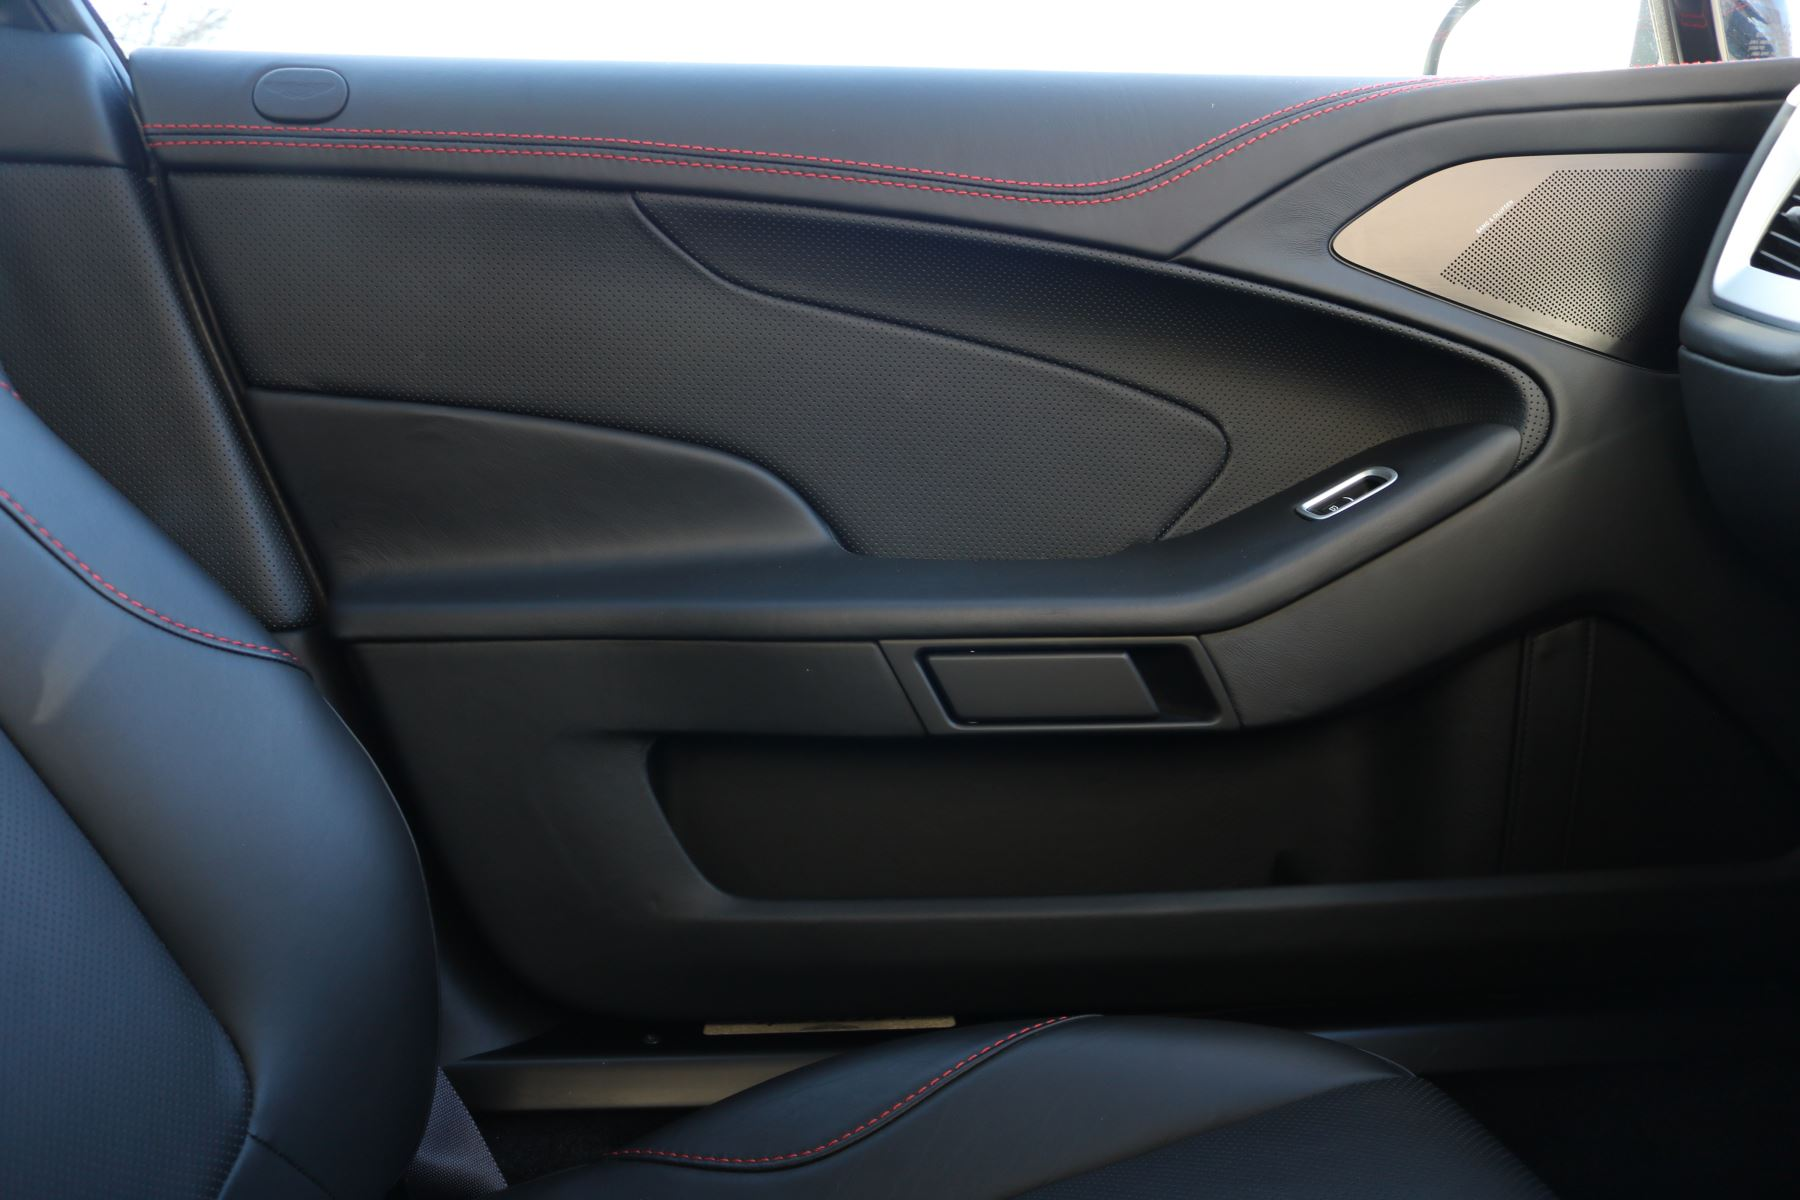 Aston Martin Vanquish V12 [568] 2+2 2dr Touchtronic 8 speed Carbon 17 Model Year Apple Car Play  image 11